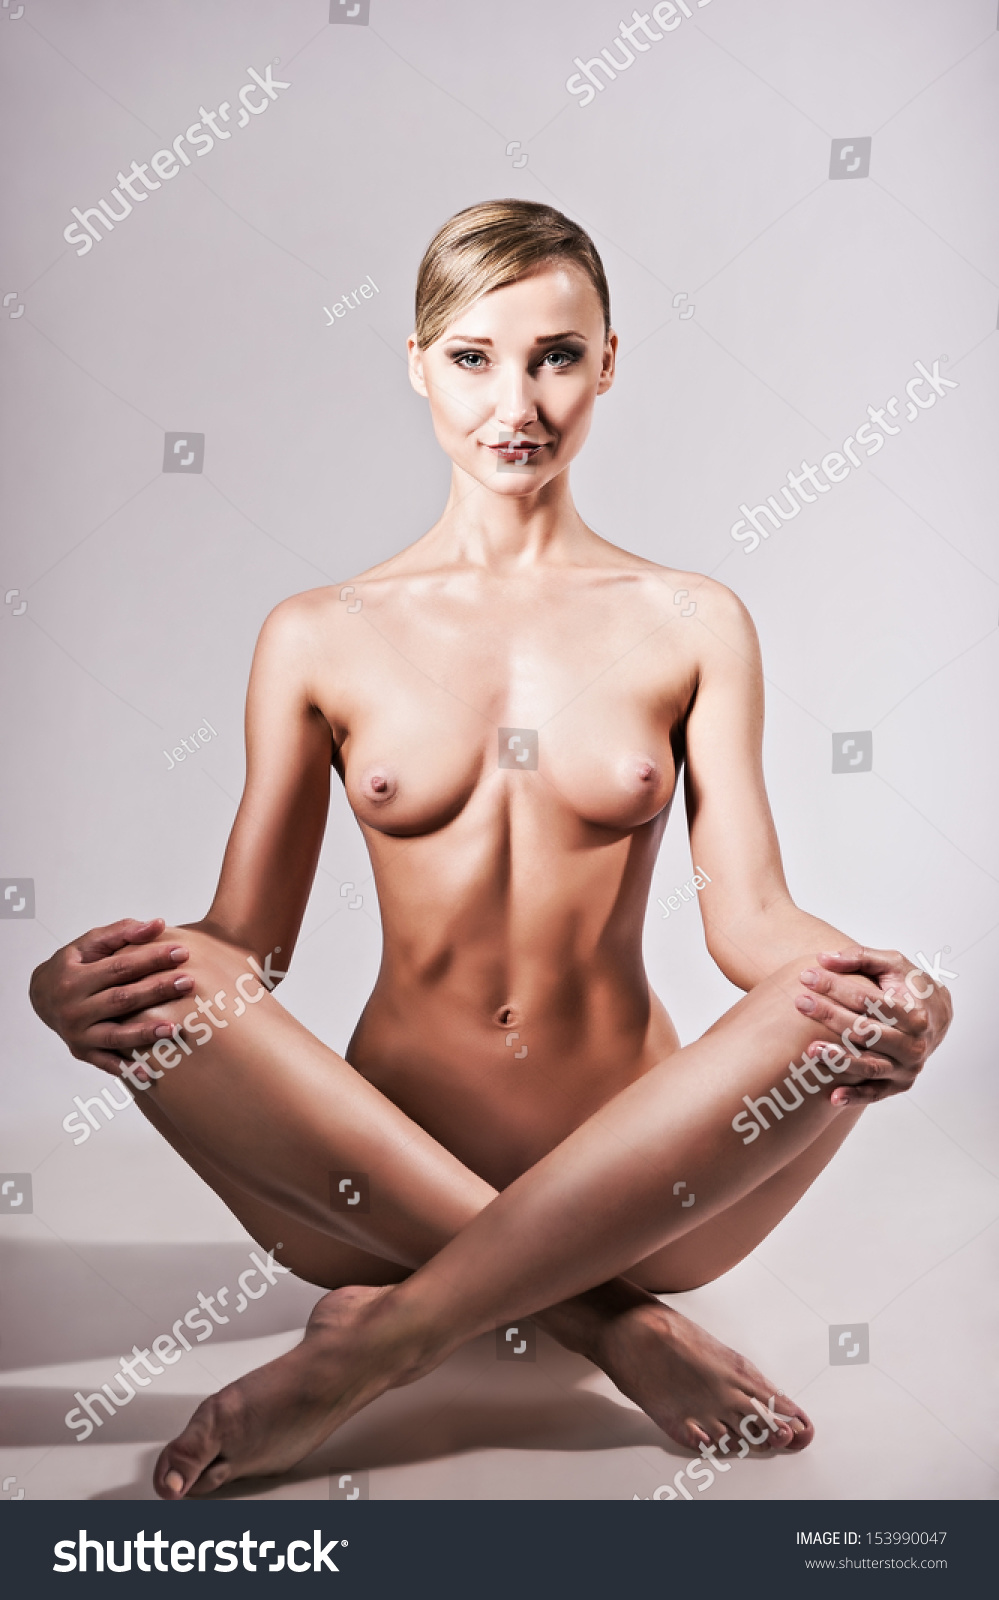 You nude sex positions photo